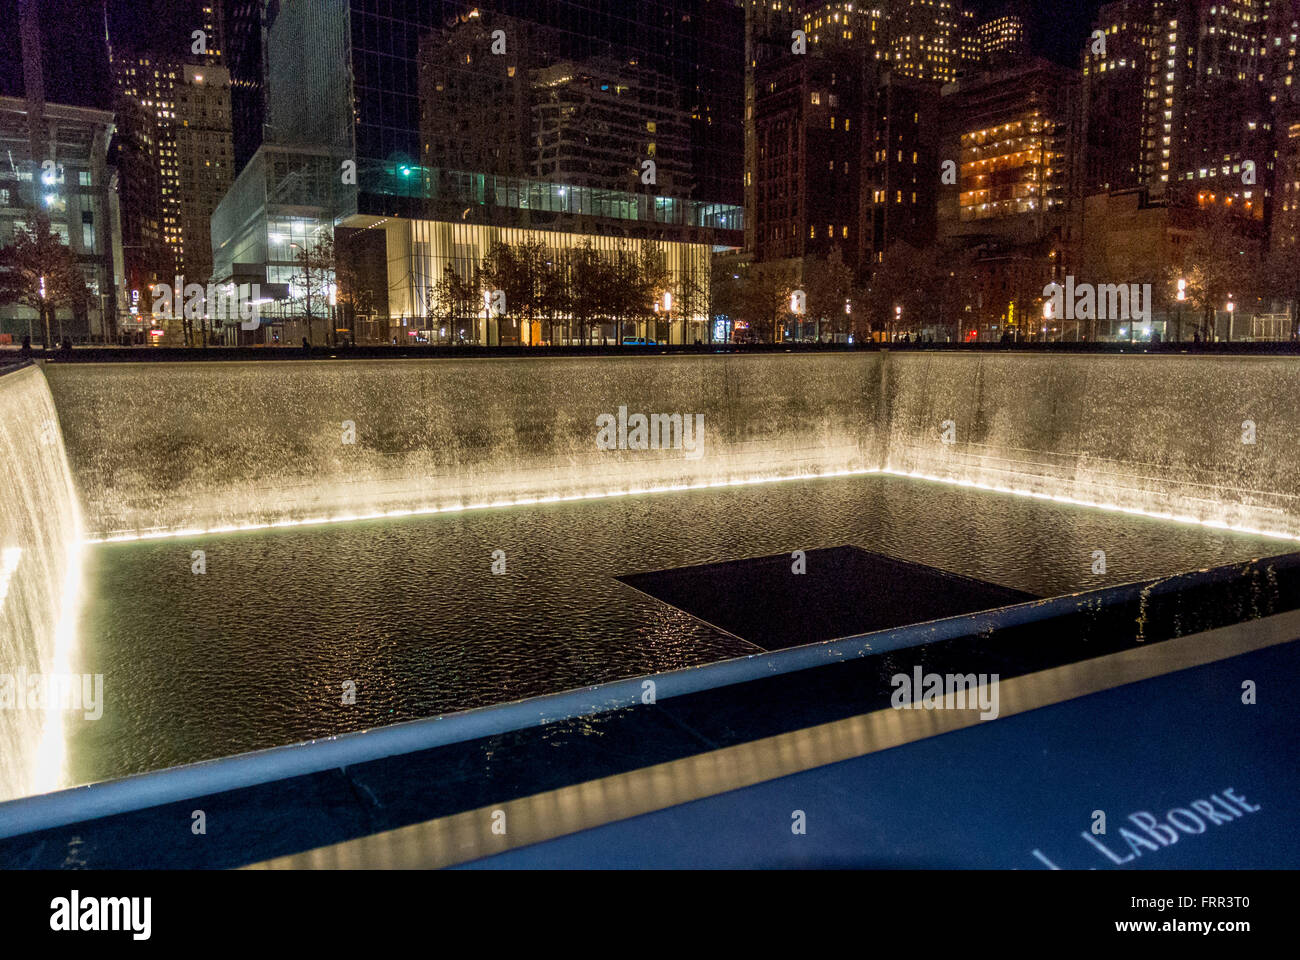 9/11 memorial, New York, USA at night - Stock Image